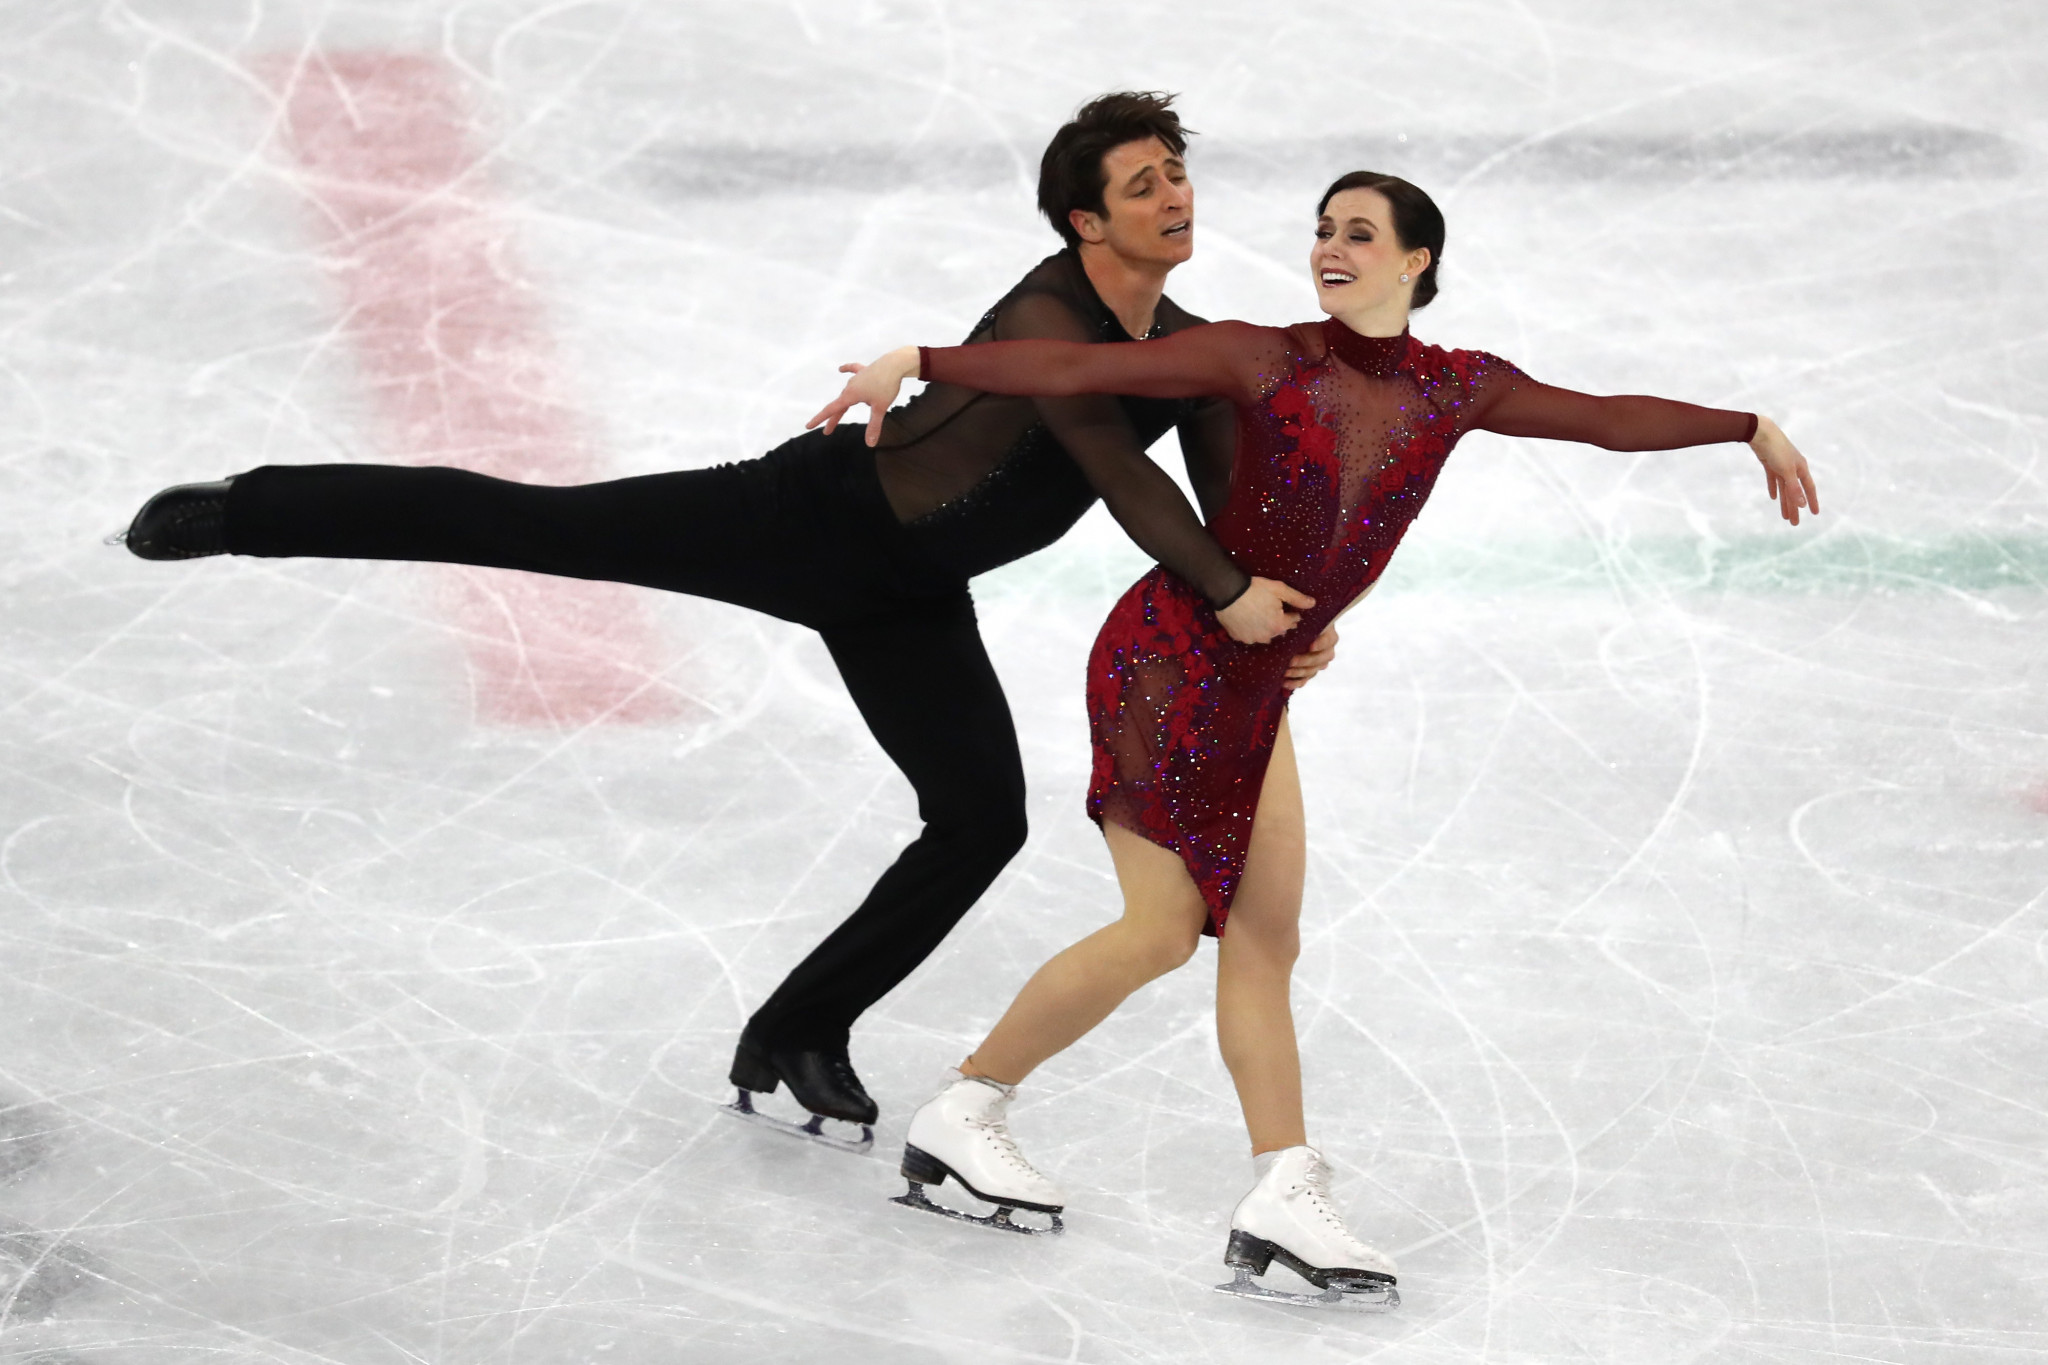 Scott Moir and Tessa Virtue completed the team event in style ©Getty Images